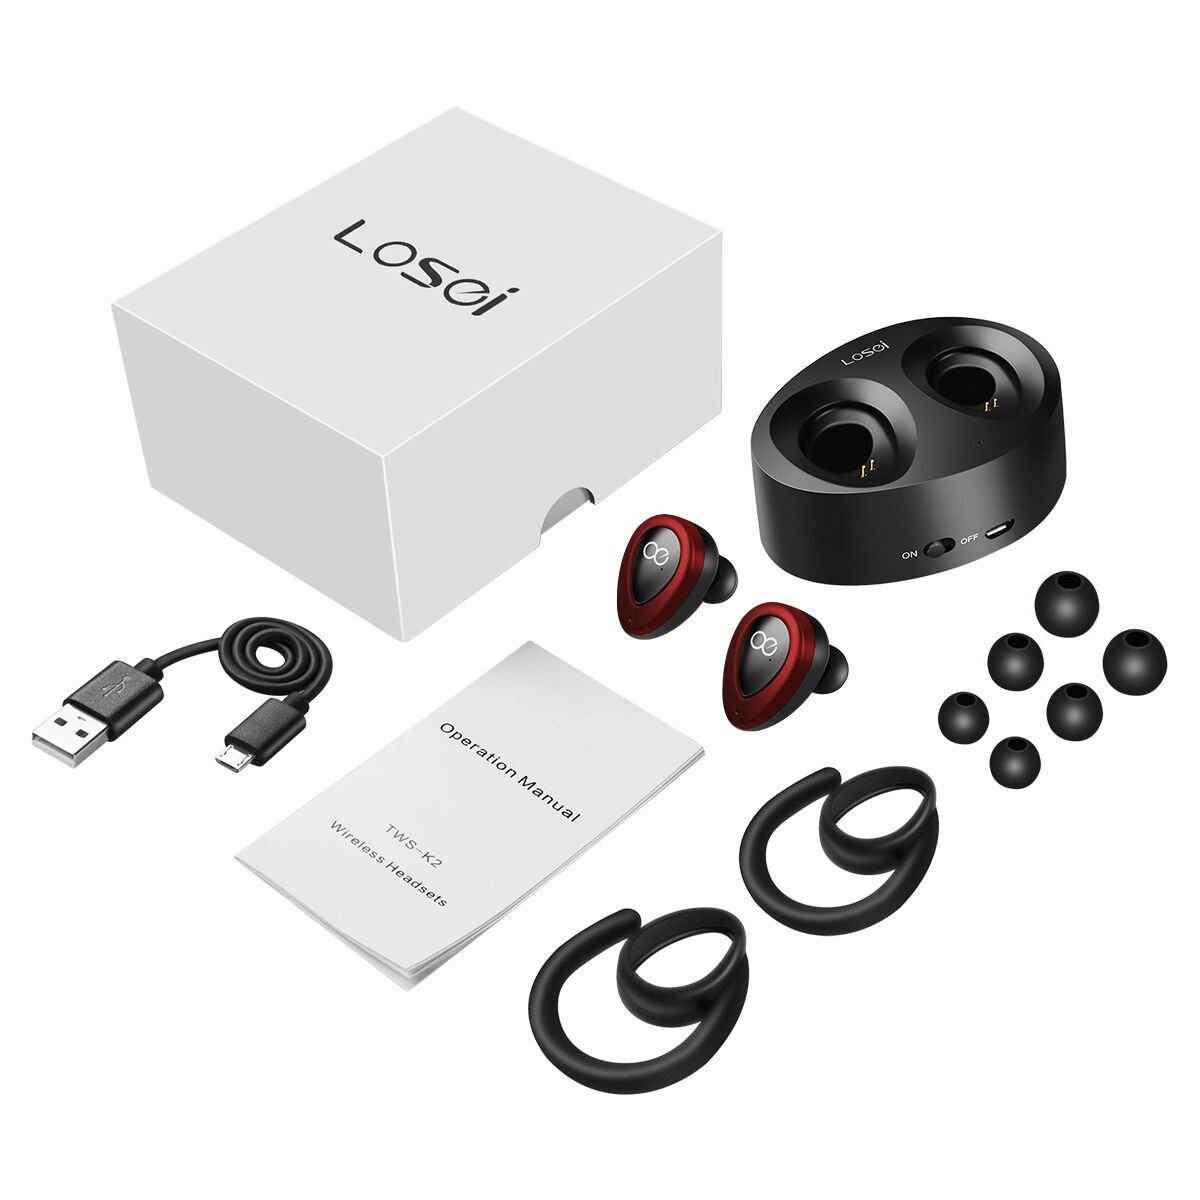 Losei Earbuds Amazon